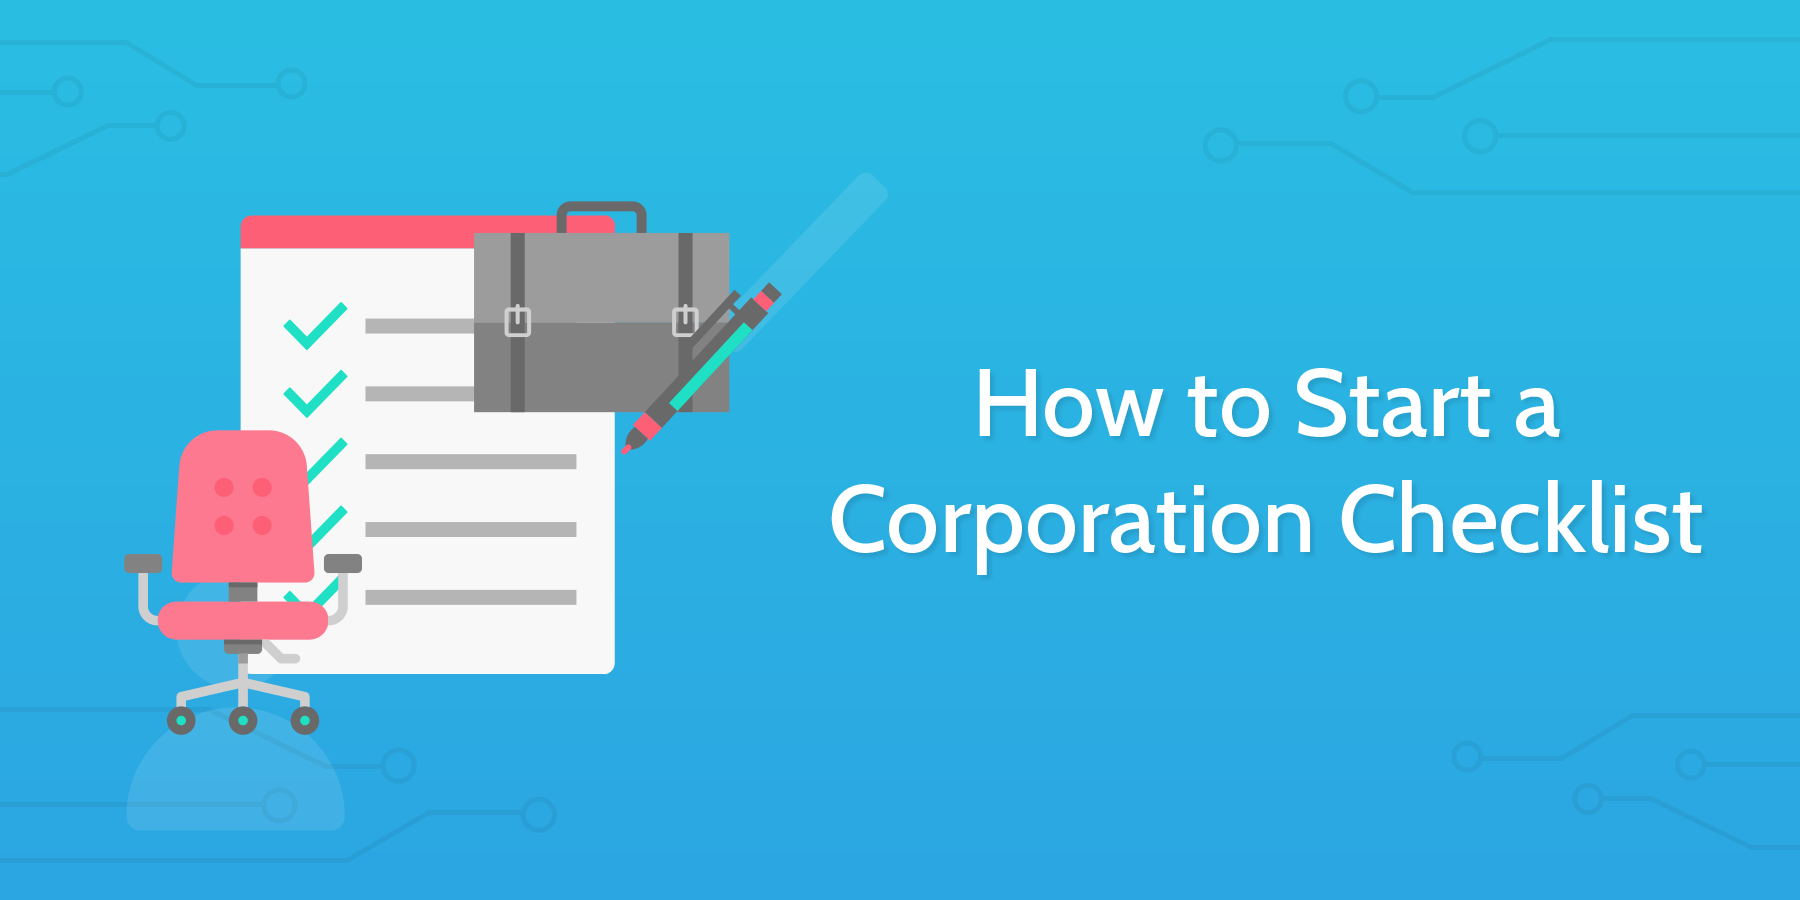 Process Street - How to Start a Corporation Checklist